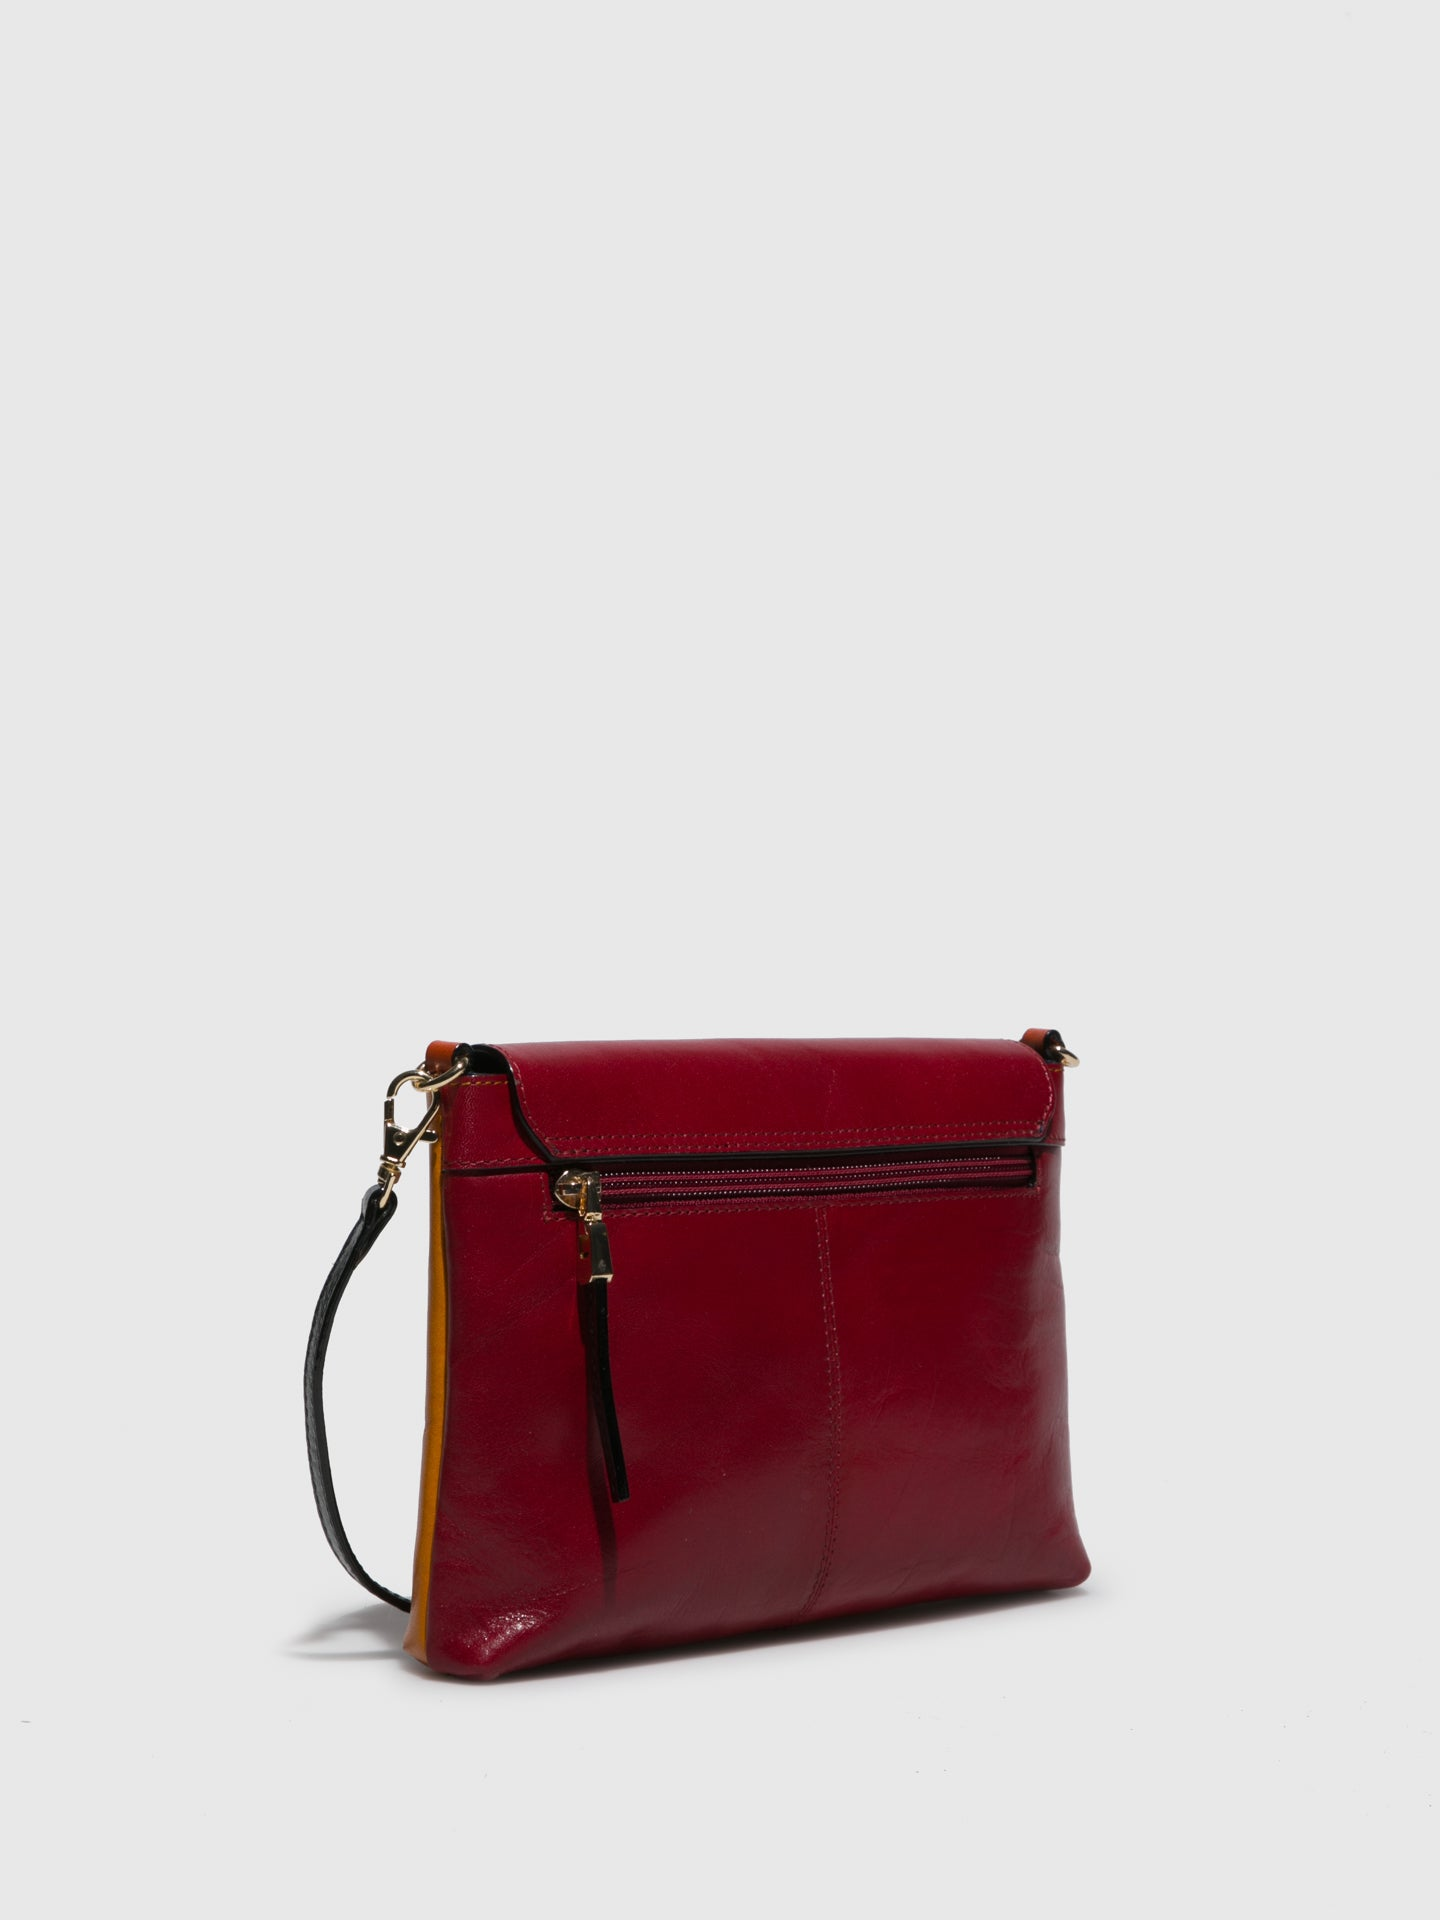 Marta Ponti Multicolor Crossbody Bag